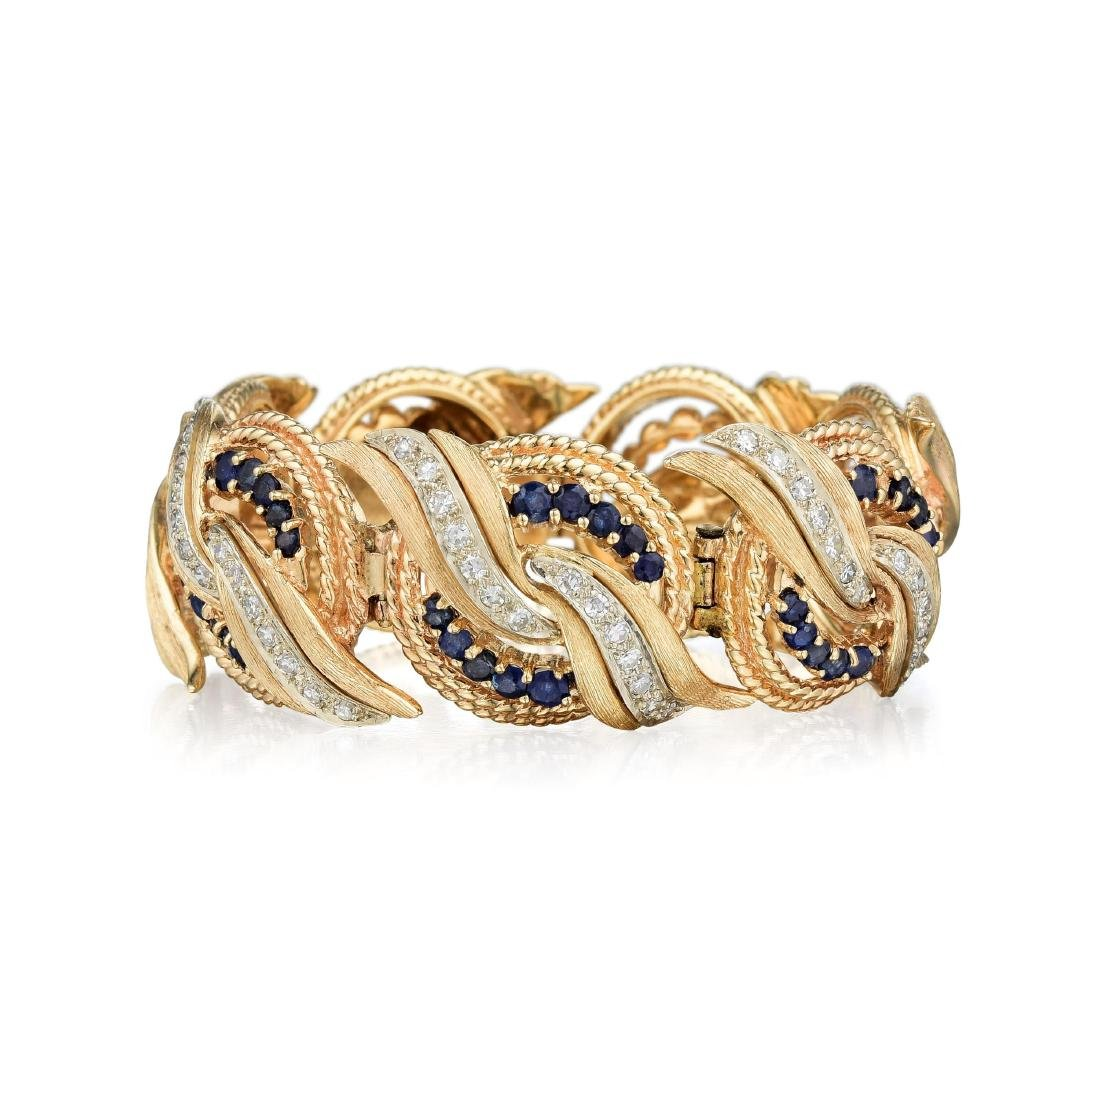 A 14K Gold, Sapphire and Diamond Bracelet